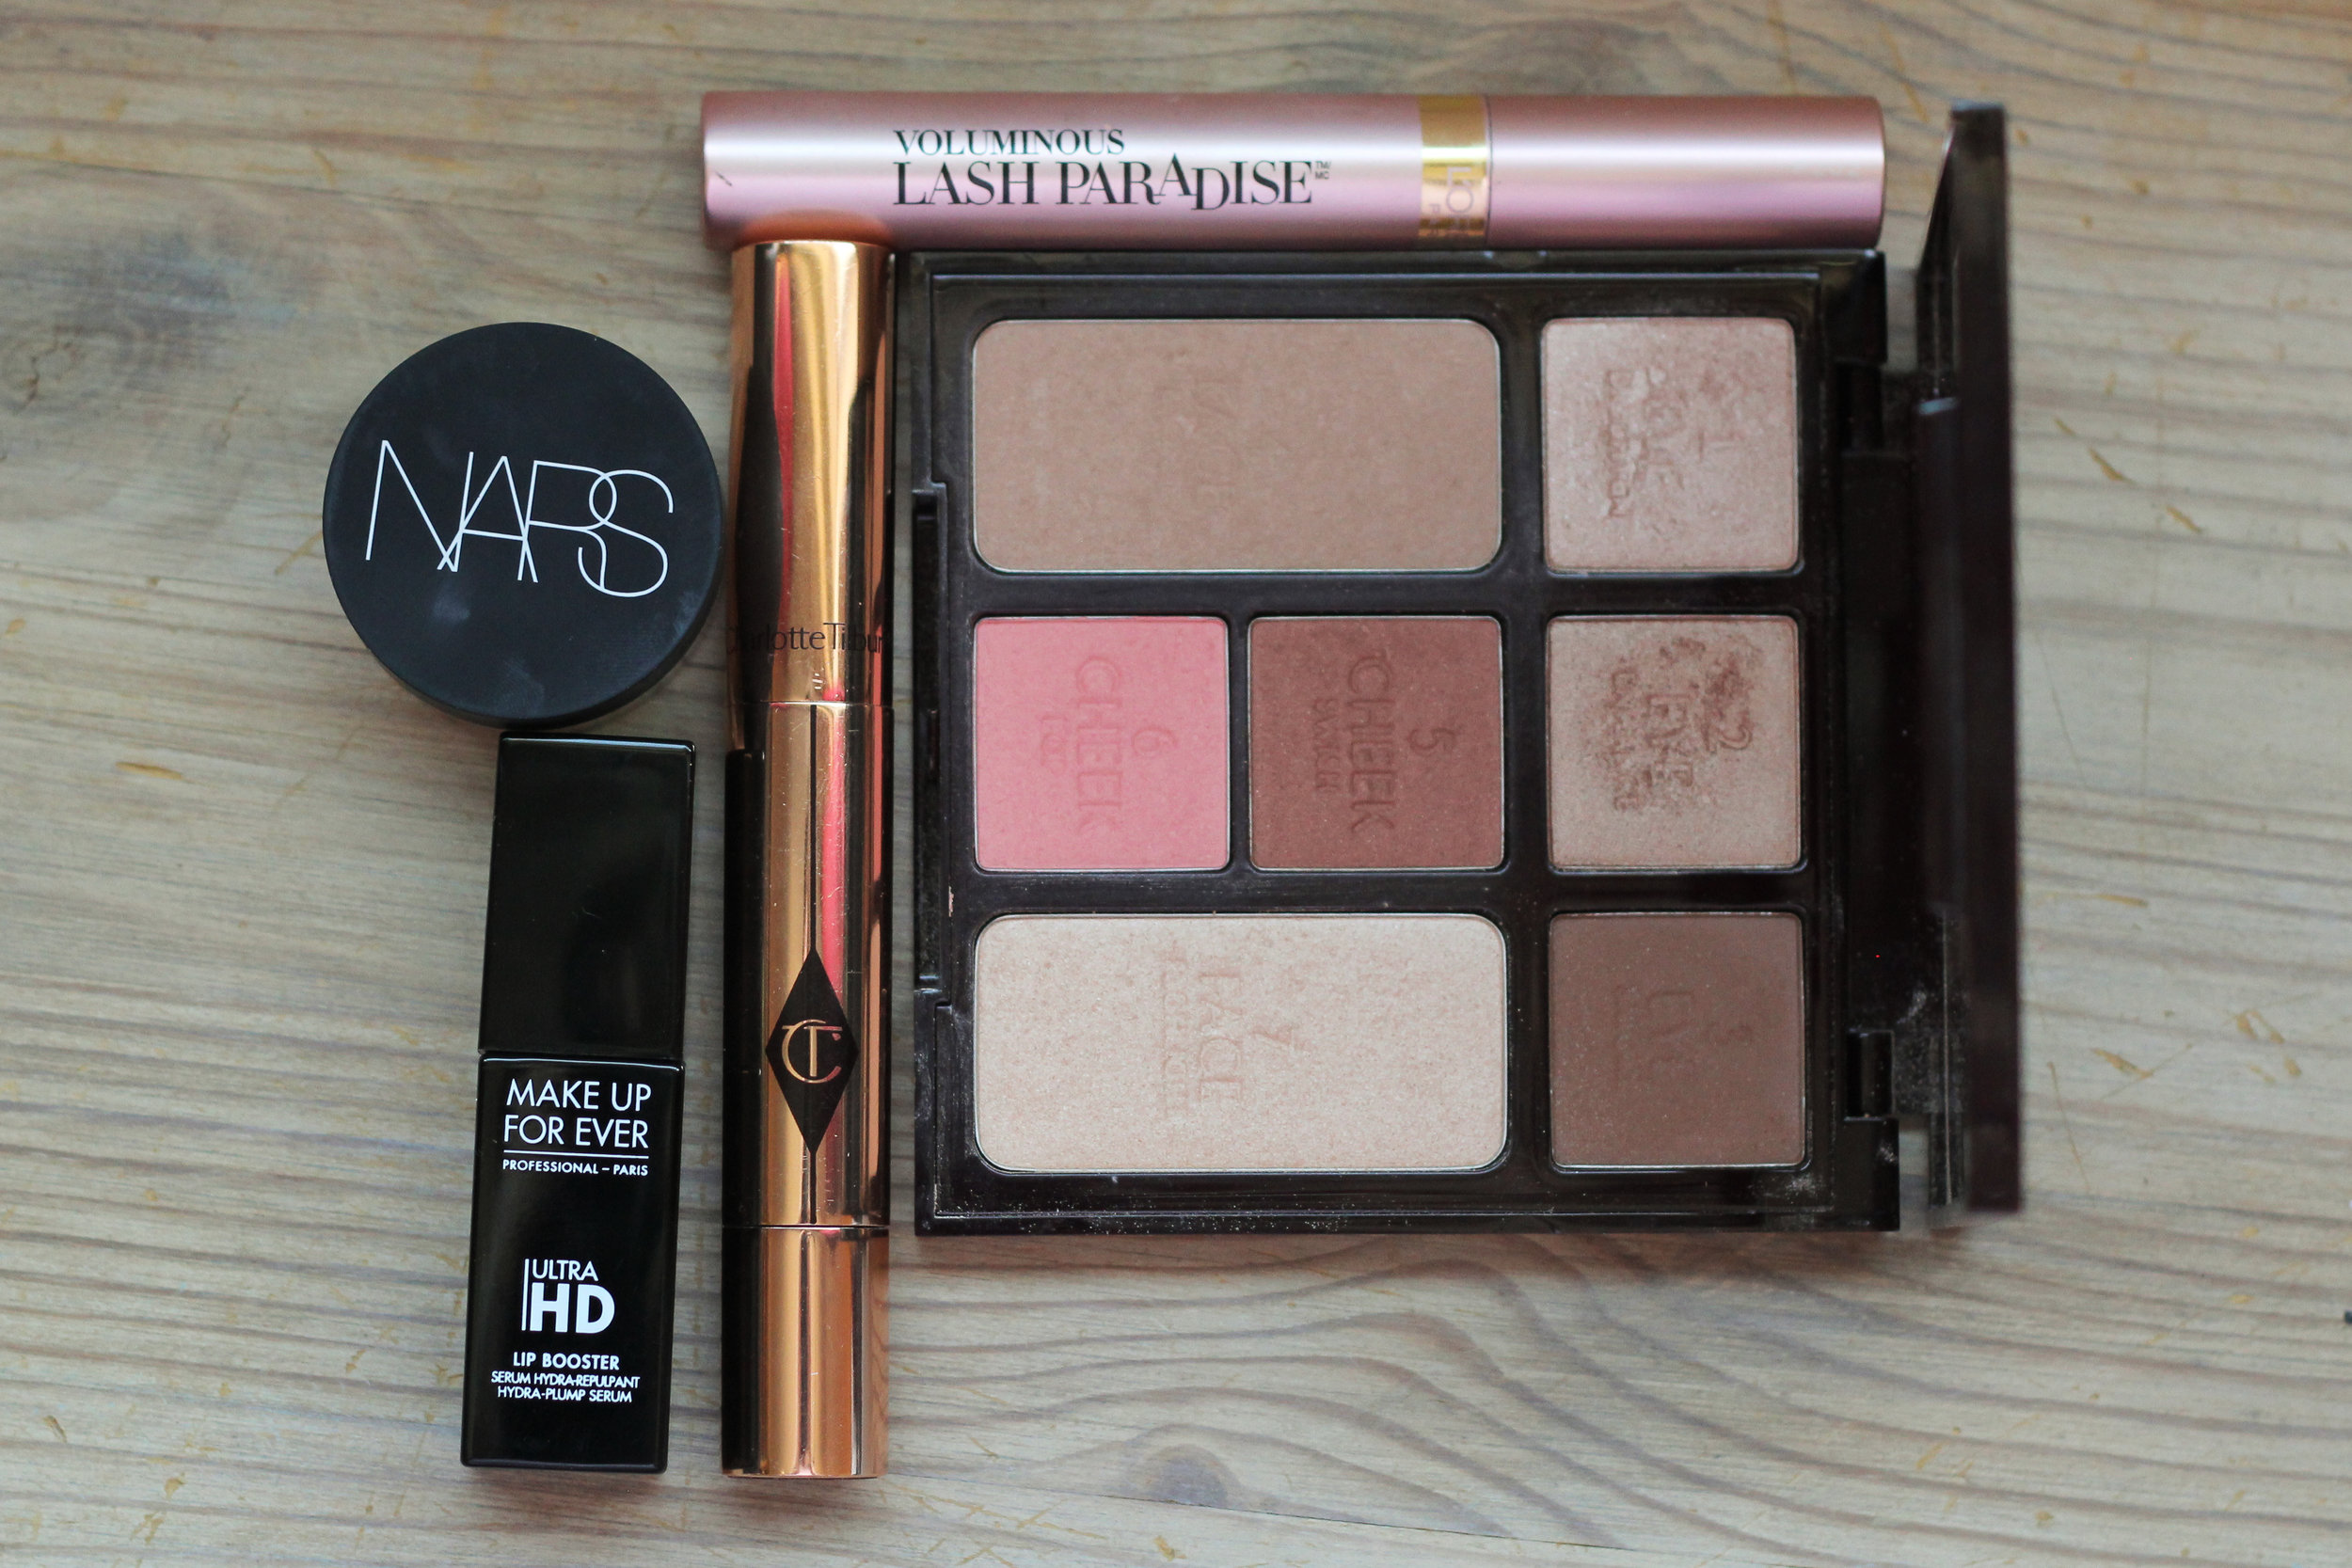 A few things I've been loving, clockwise from the bottom left: Make Up For Ever Ultra HD Lip Booster, NARS Soft Matte Complete Concealer, Charlotte Tilbury The Retoucher Pen, and Charlotte Tilbury Instant Look in a Palette - Beauty Glow.